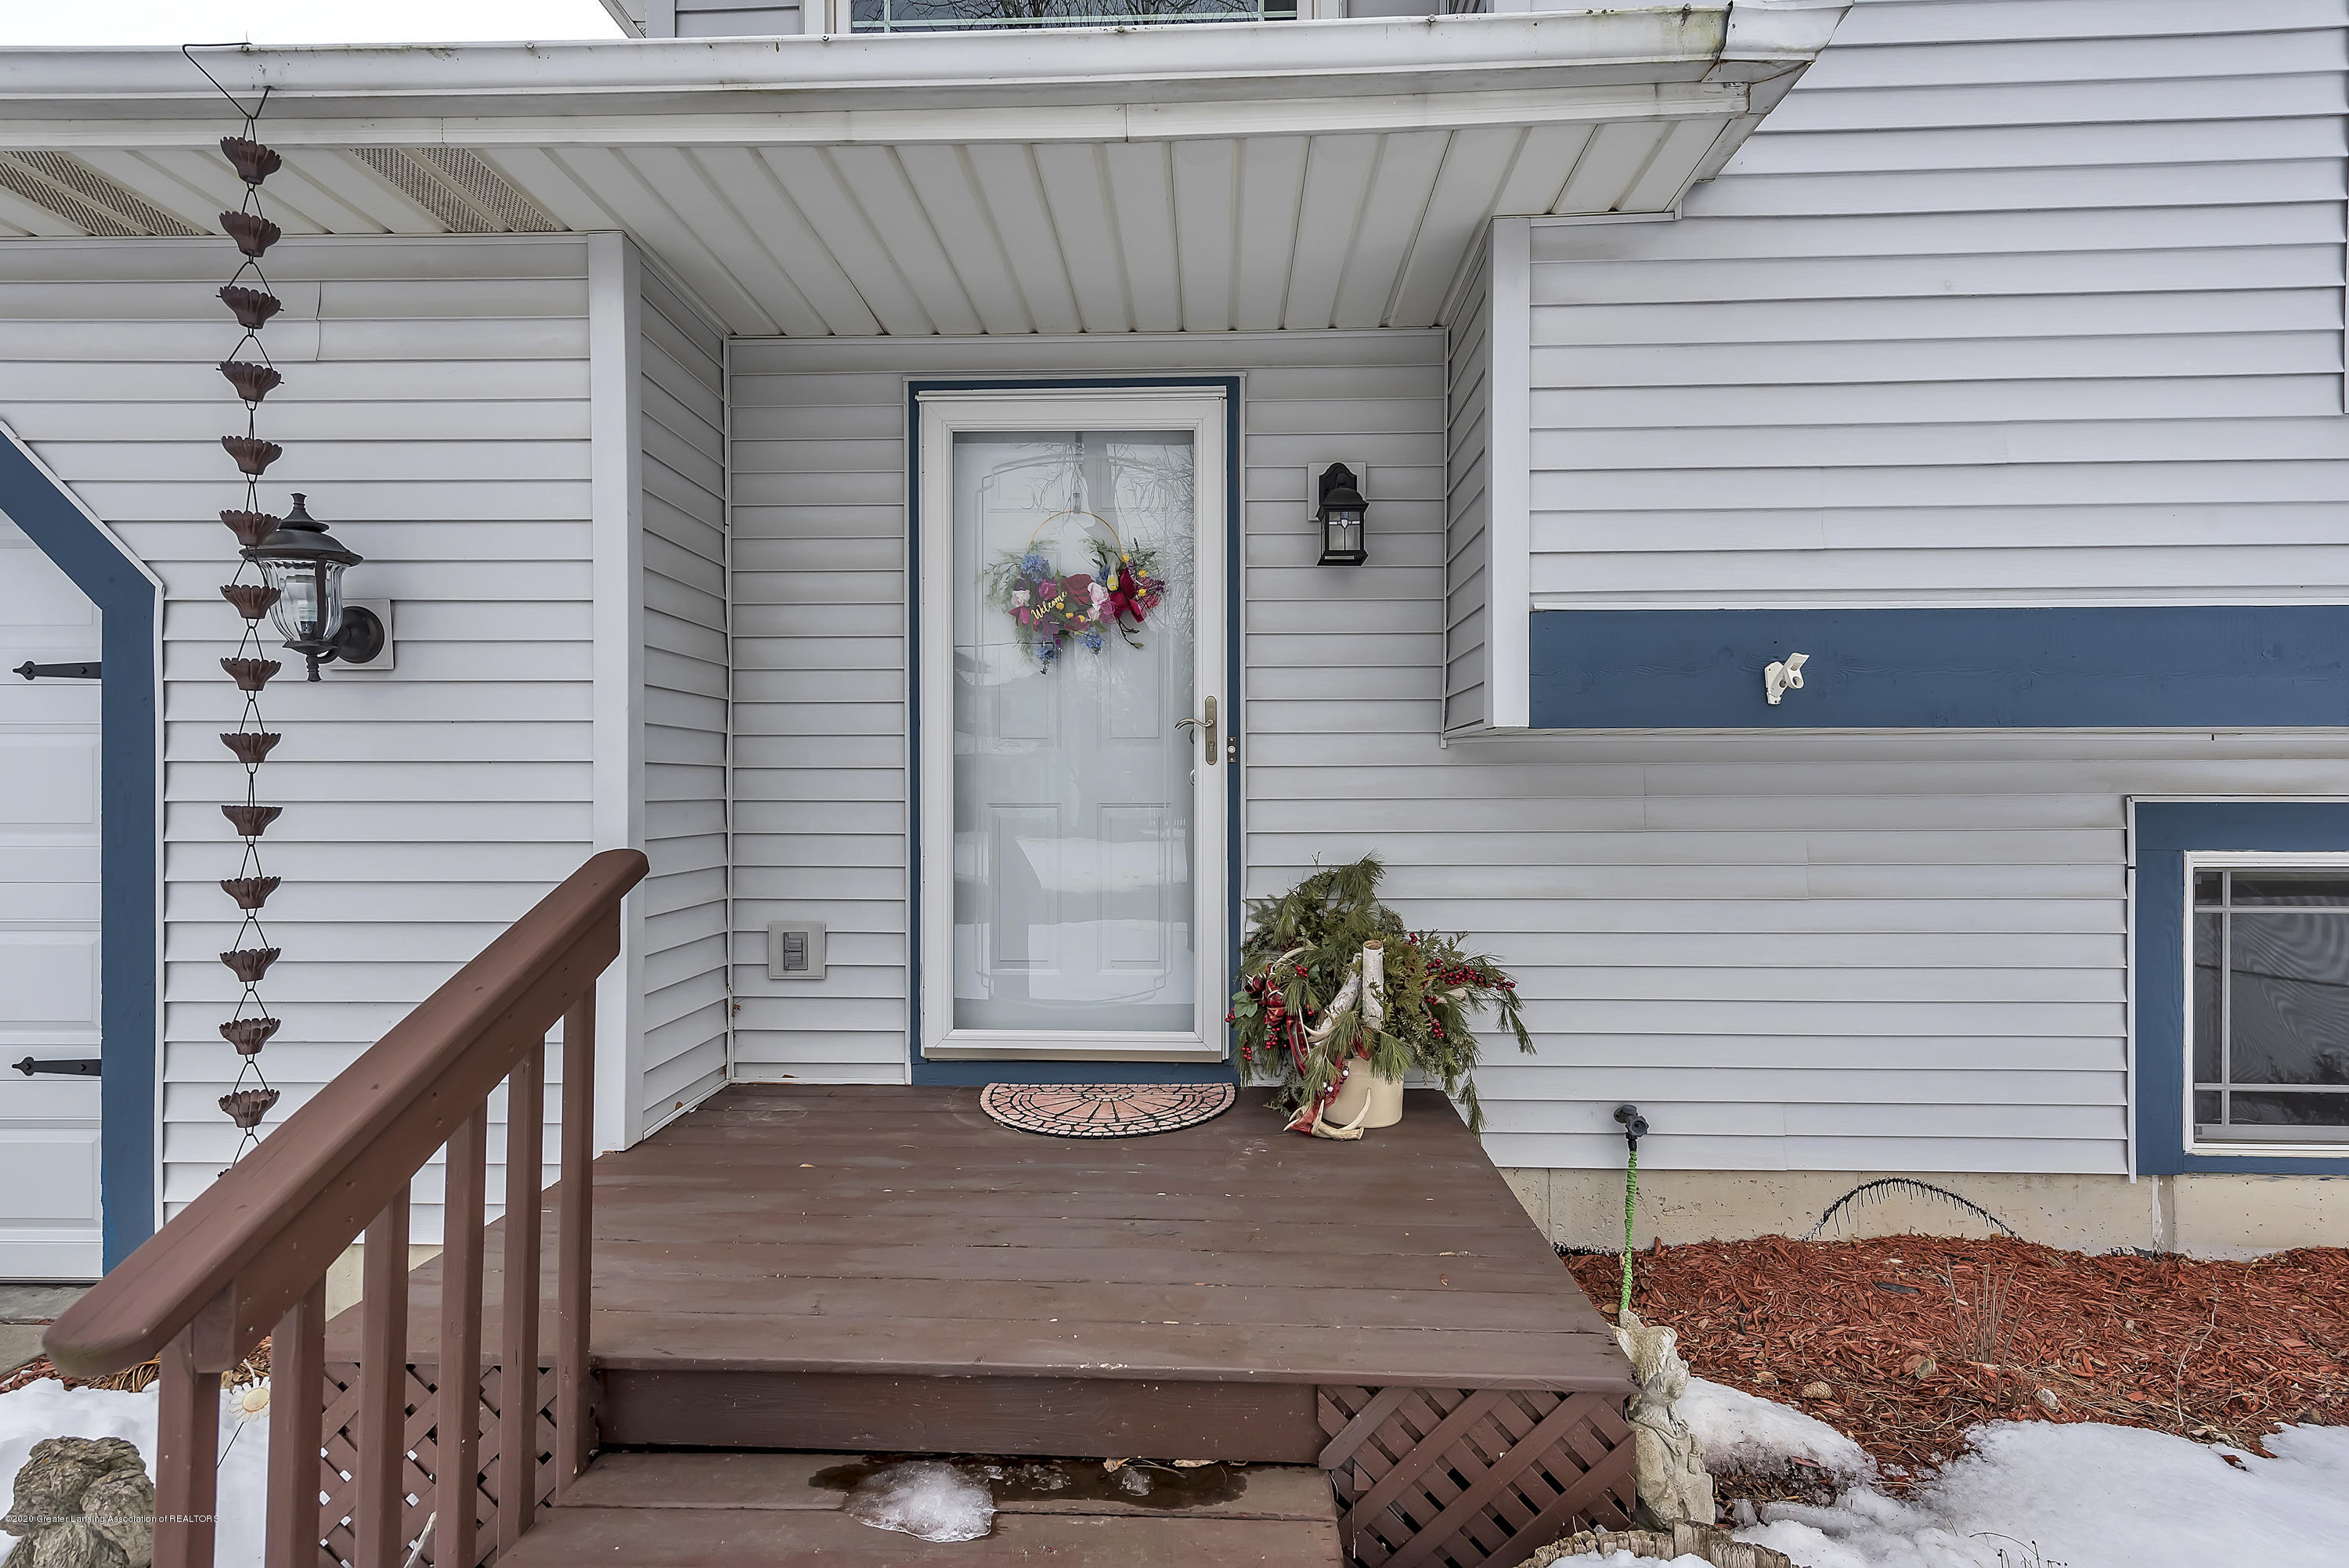 2450 Featherstone Dr - 2450-Featherstone-Dr-WindowStill-Real-Es - 5